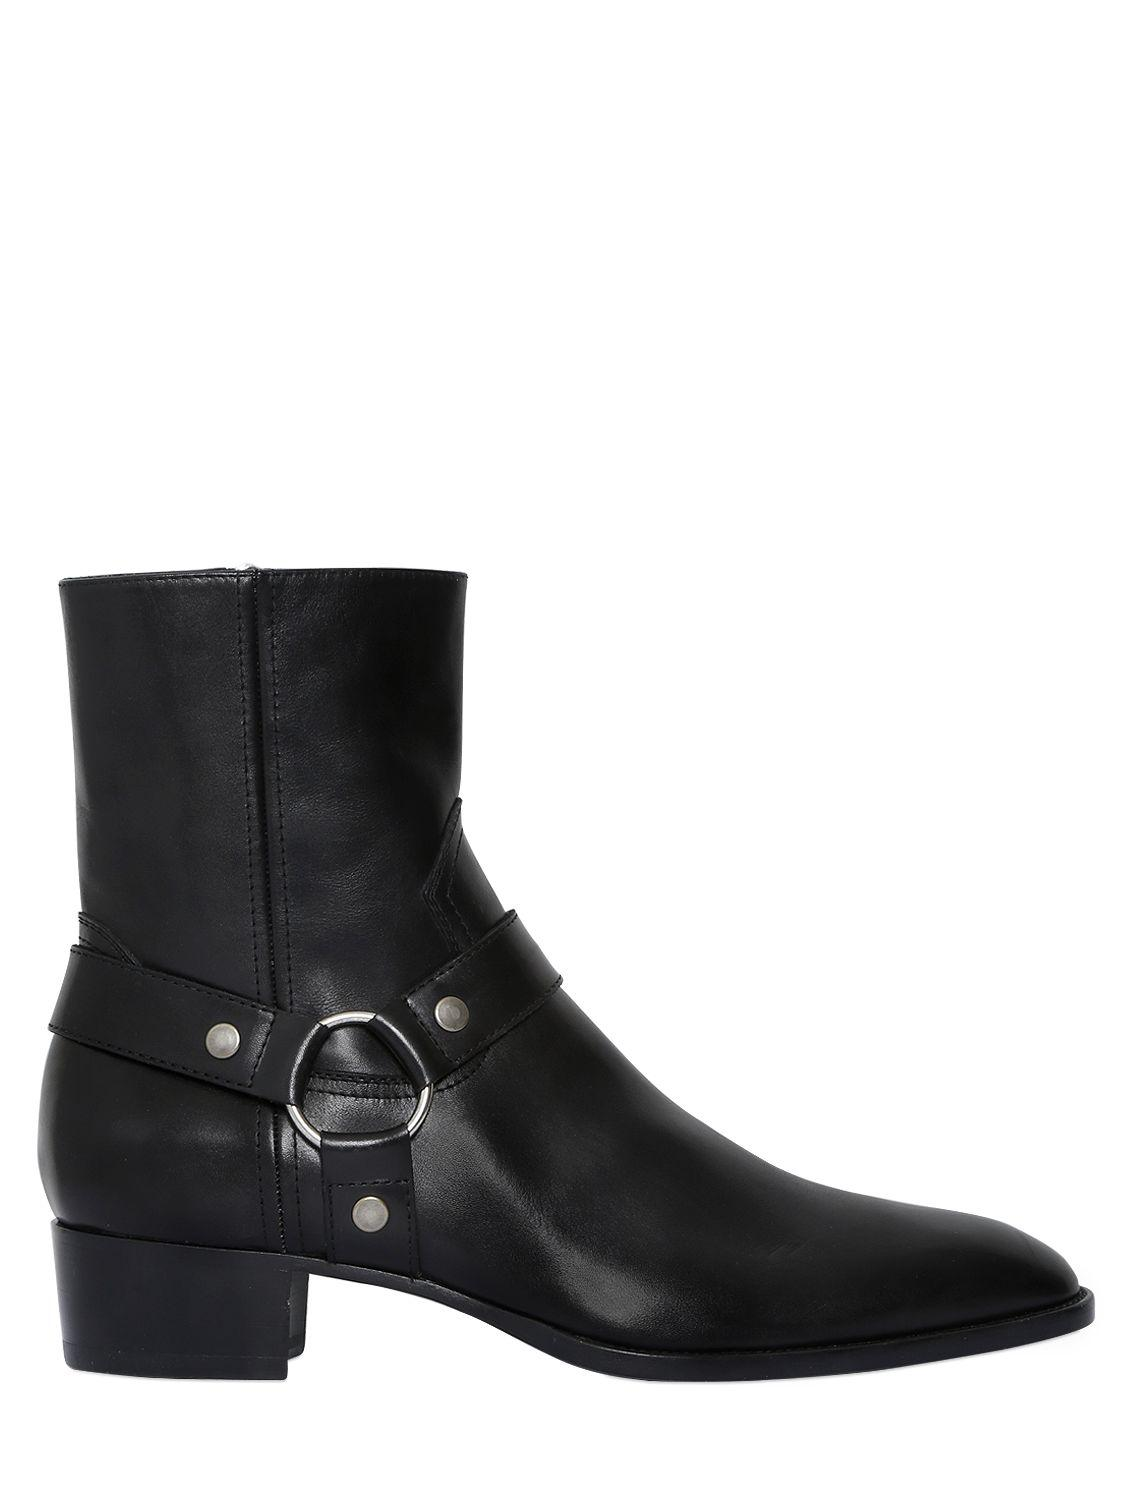 Saint Laurent 40MM WYATT BELTED SUEDE CROPPED BOOTS qT4C5E